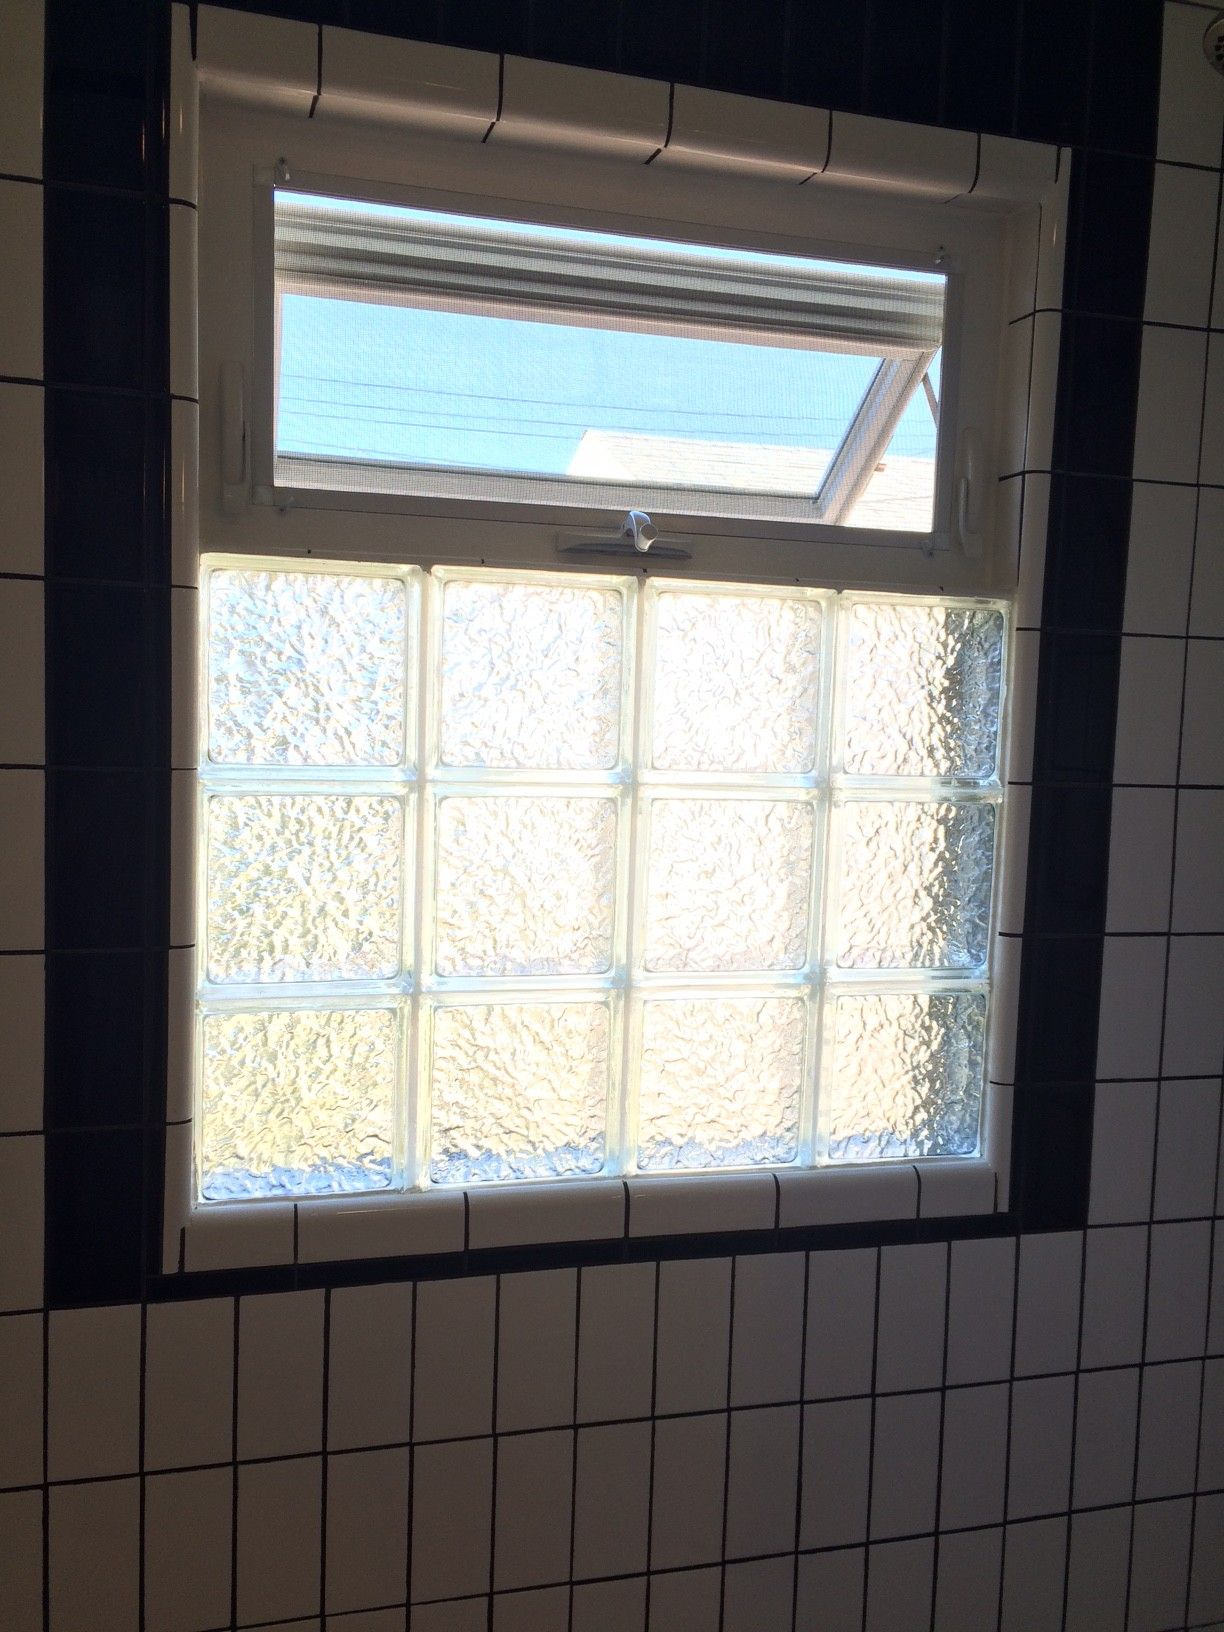 Bathroom Ideas The Block black and white bathroom remodel. glass block with awning window